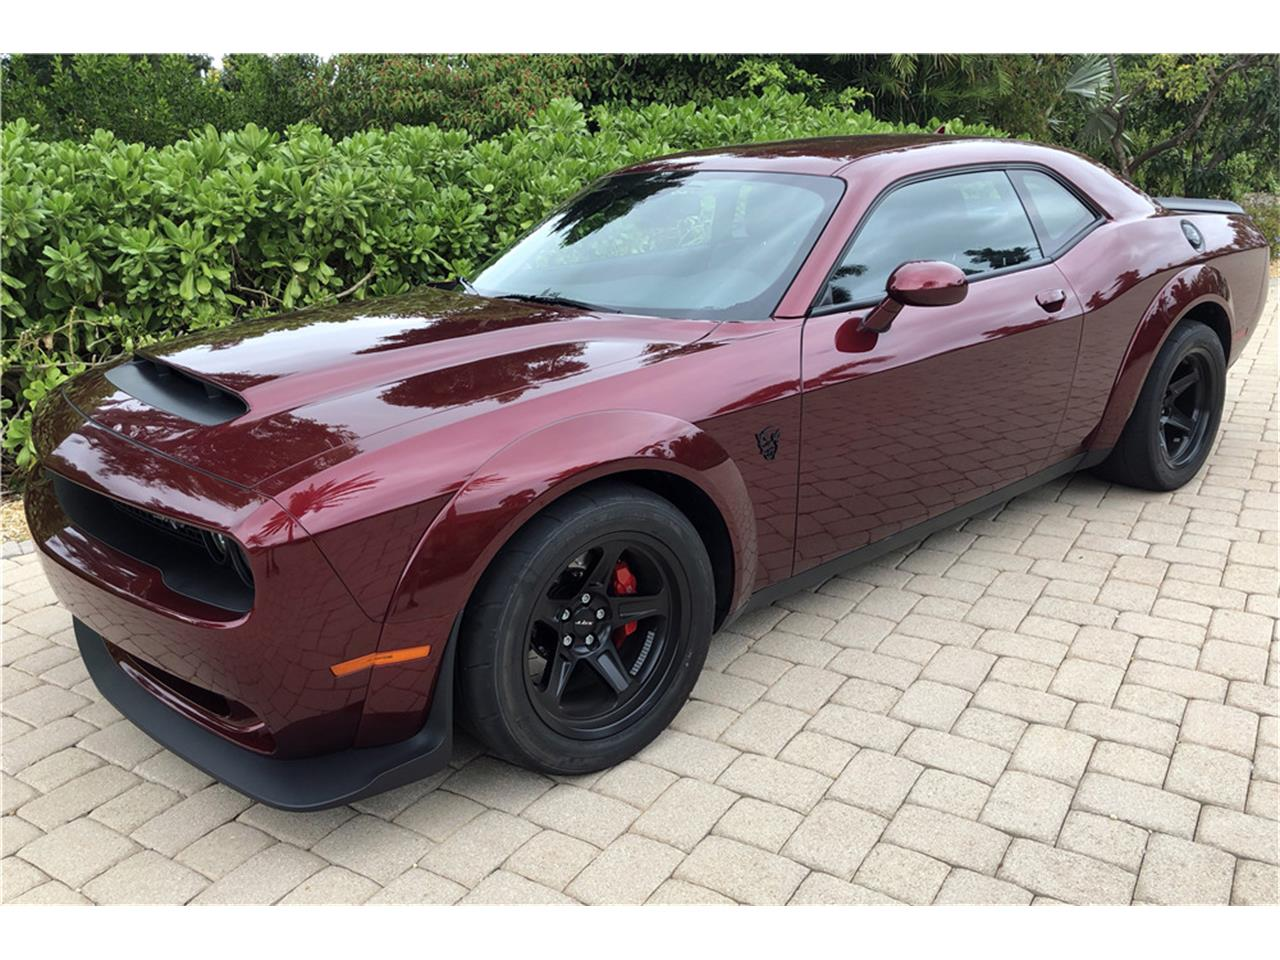 2018 Dodge Challenger Srt Demon For Sale In West Palm Beach Fl Classiccarsbay Com